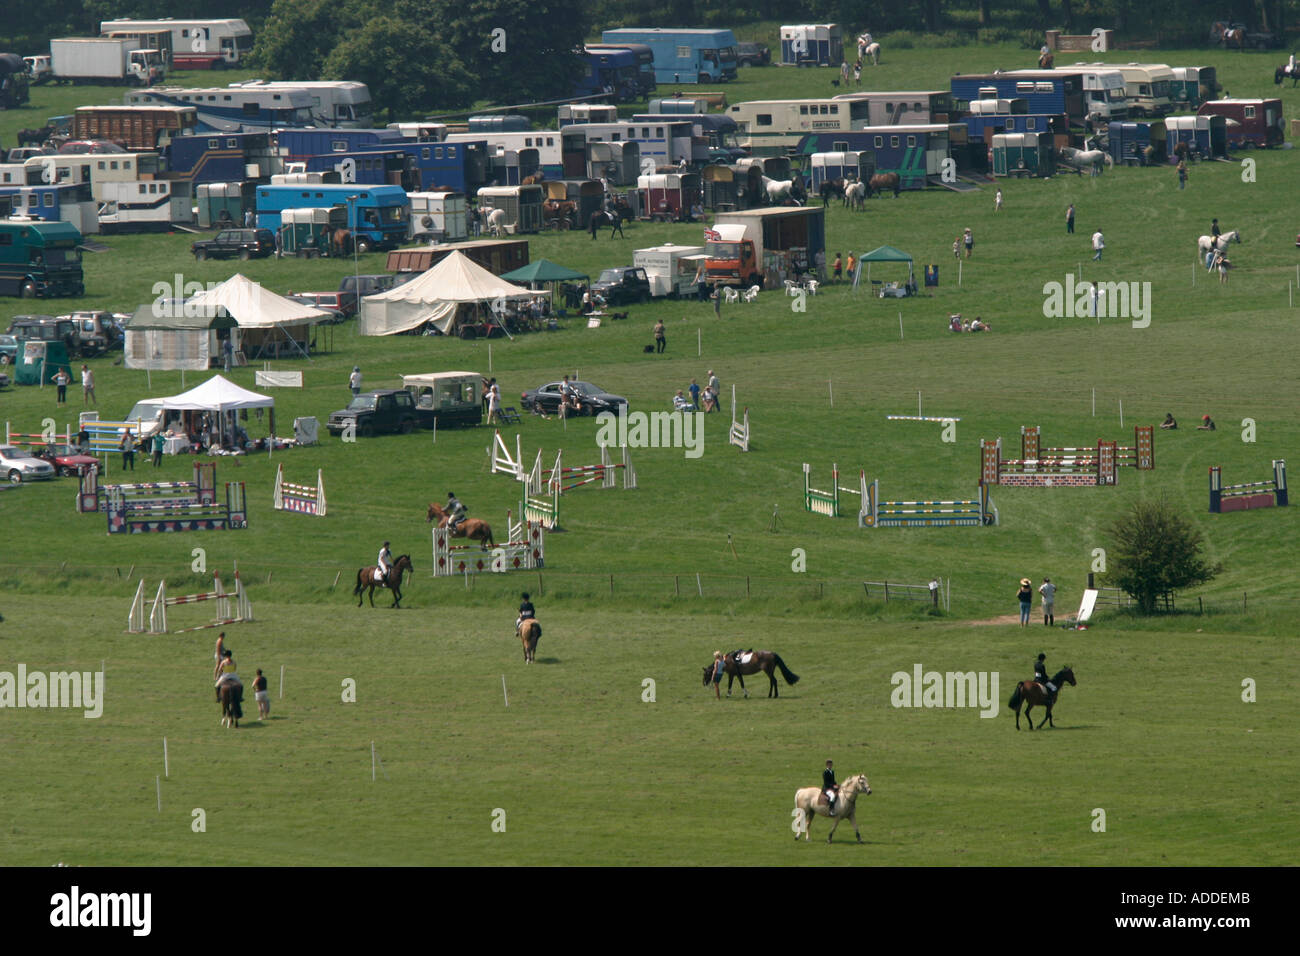 The South Oxfordshire Riding Clubs Open Show takes place on the Hambleden estate. - Stock Image